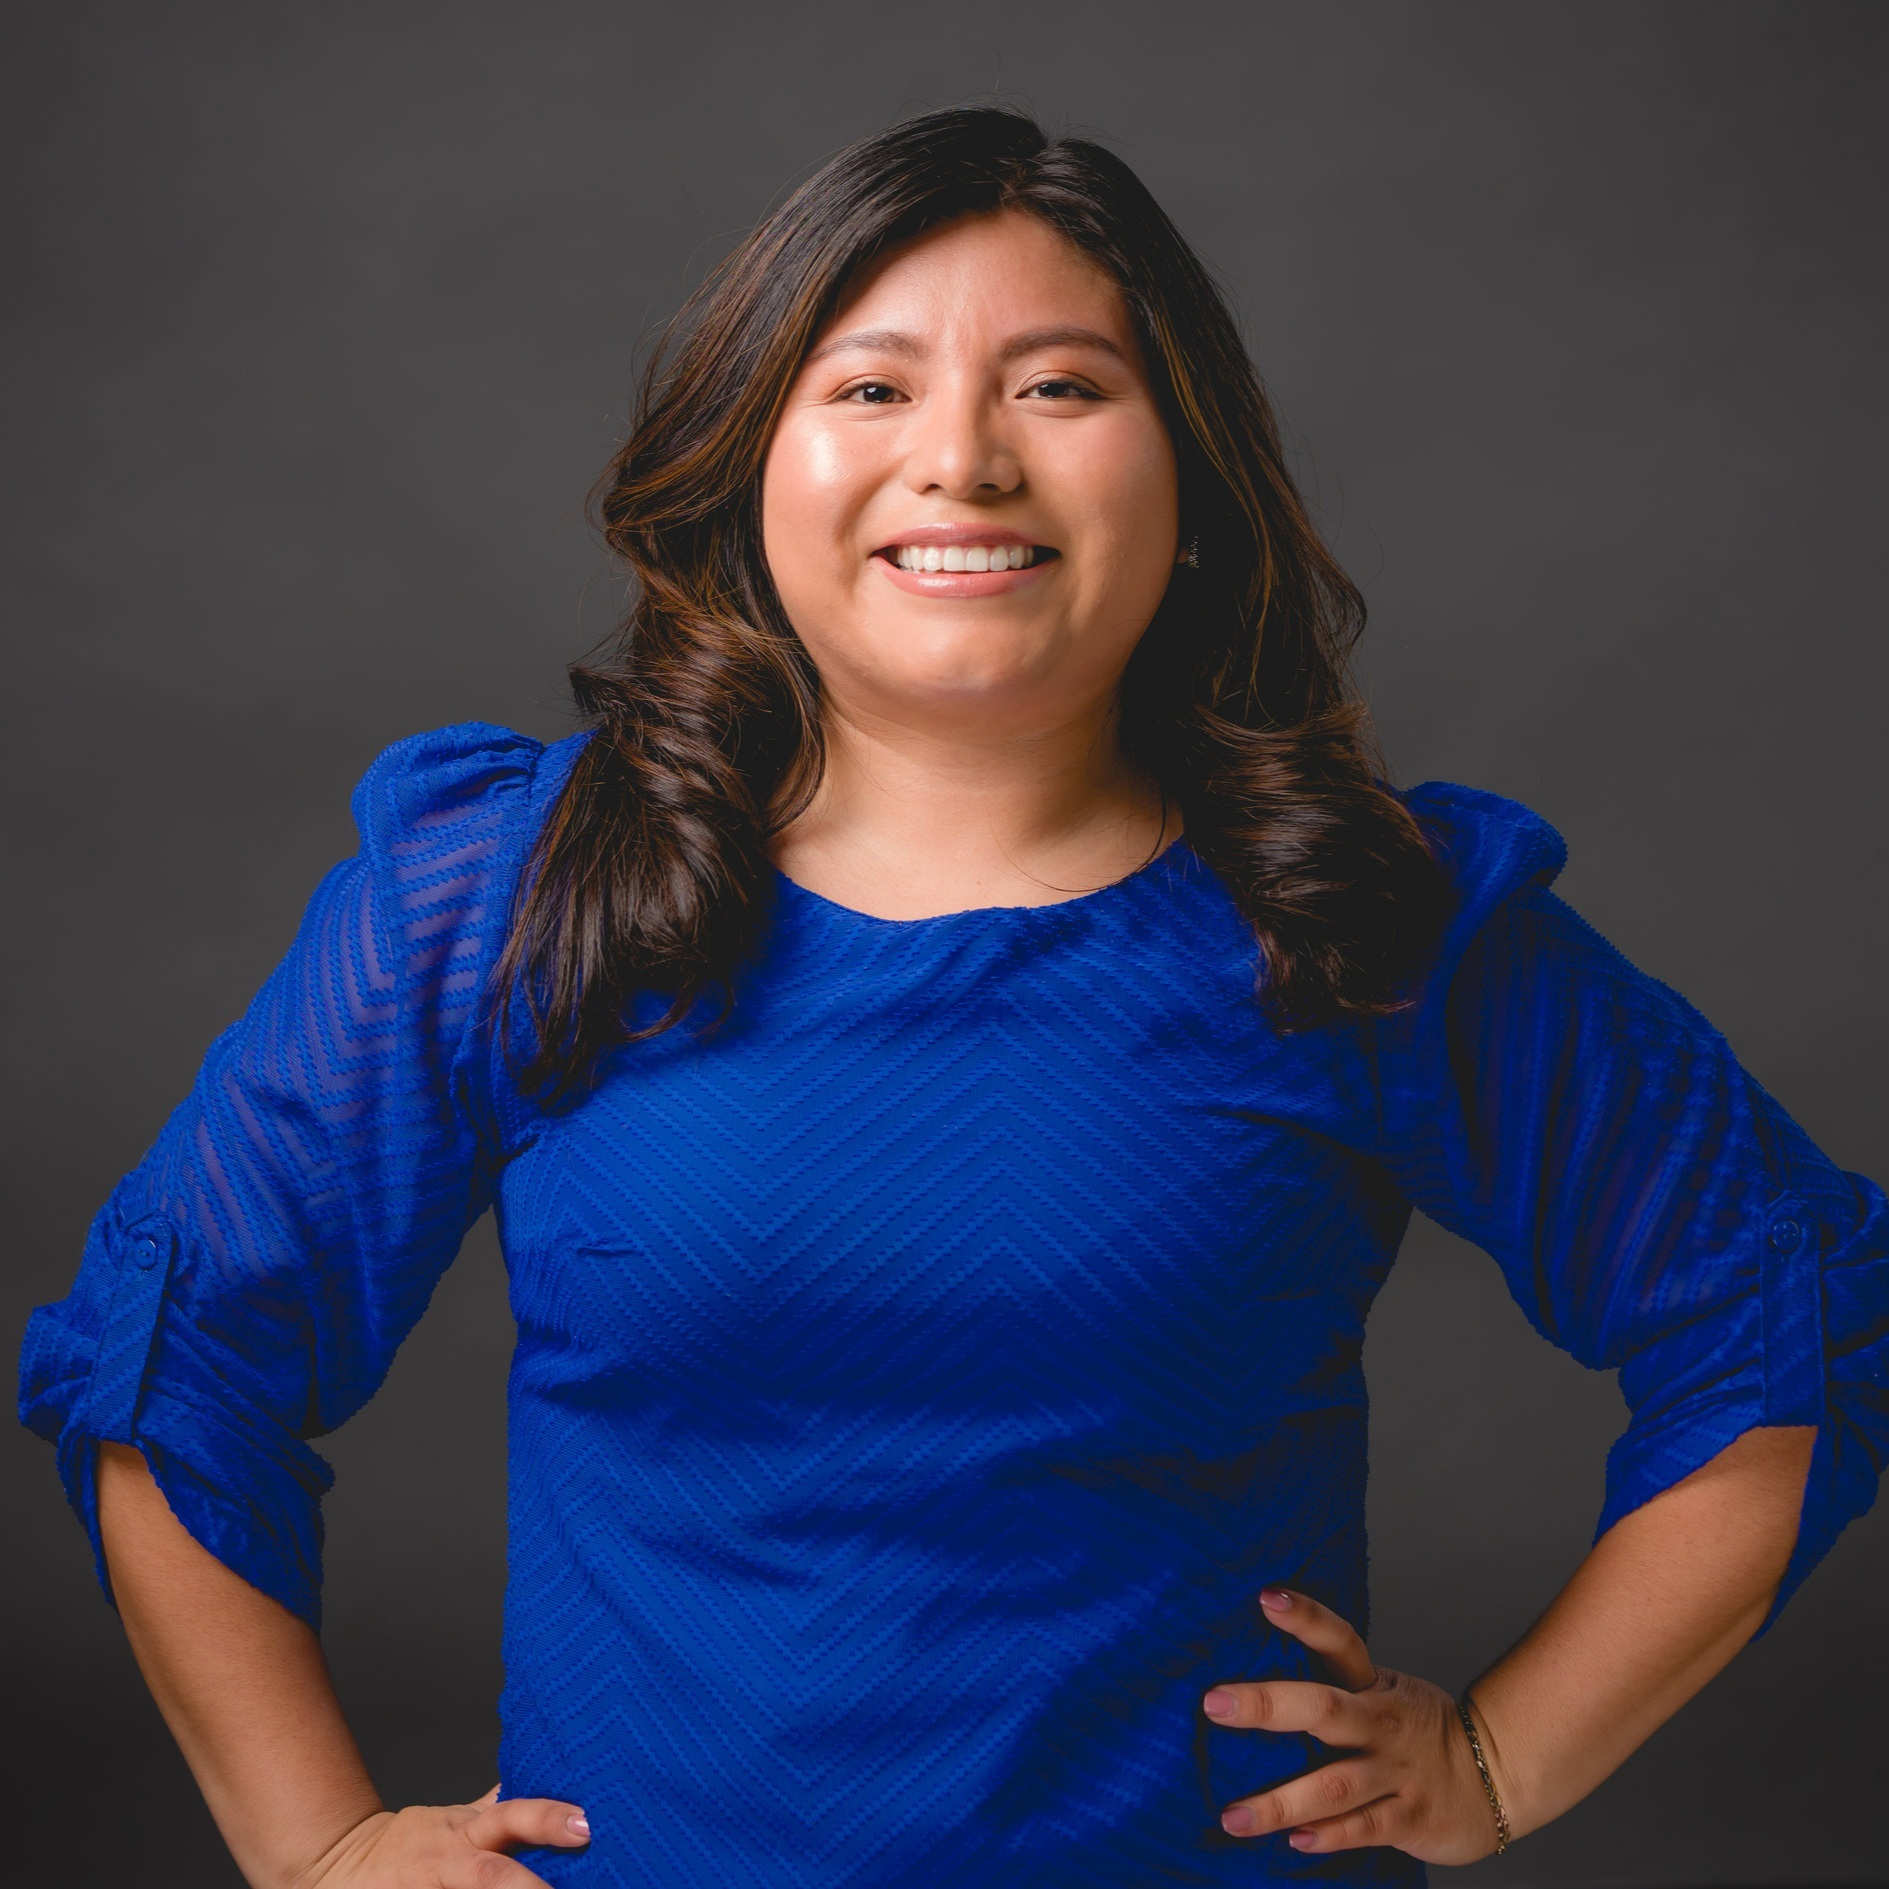 2019 Monzón Fellow  Adriana is Manager of Alumni Programs for New American Leaders, an organization dedicated to recruiting and preparing people from immigrant communities to run for office.